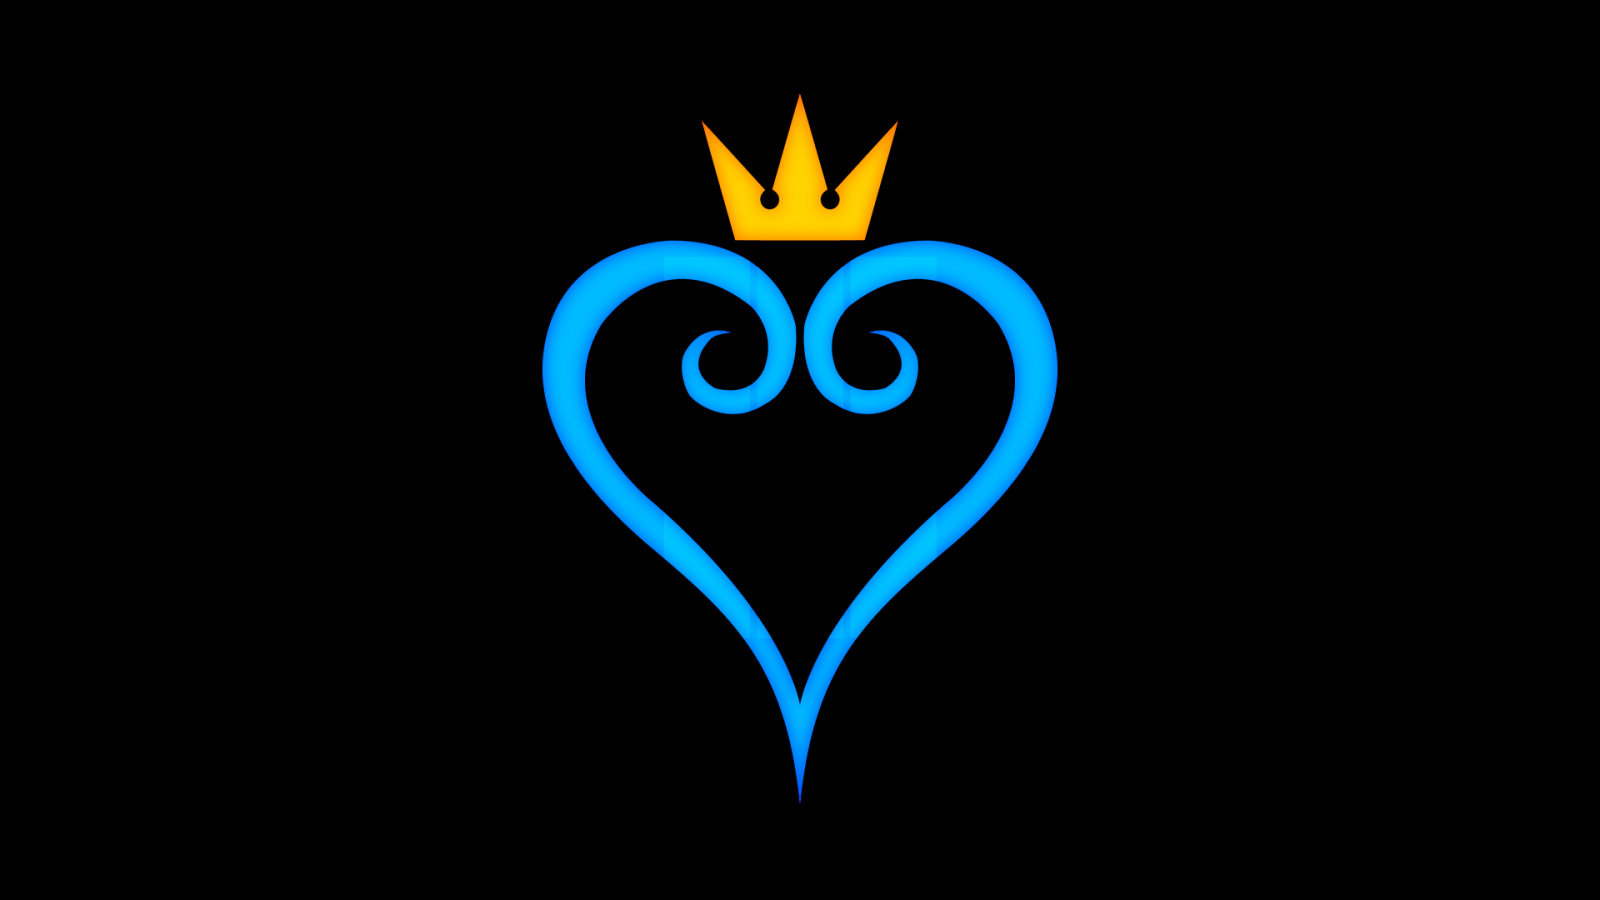 1600x900 Kingdom Hearts Heart Black Logo Crown Disney HD Wallpaper ...